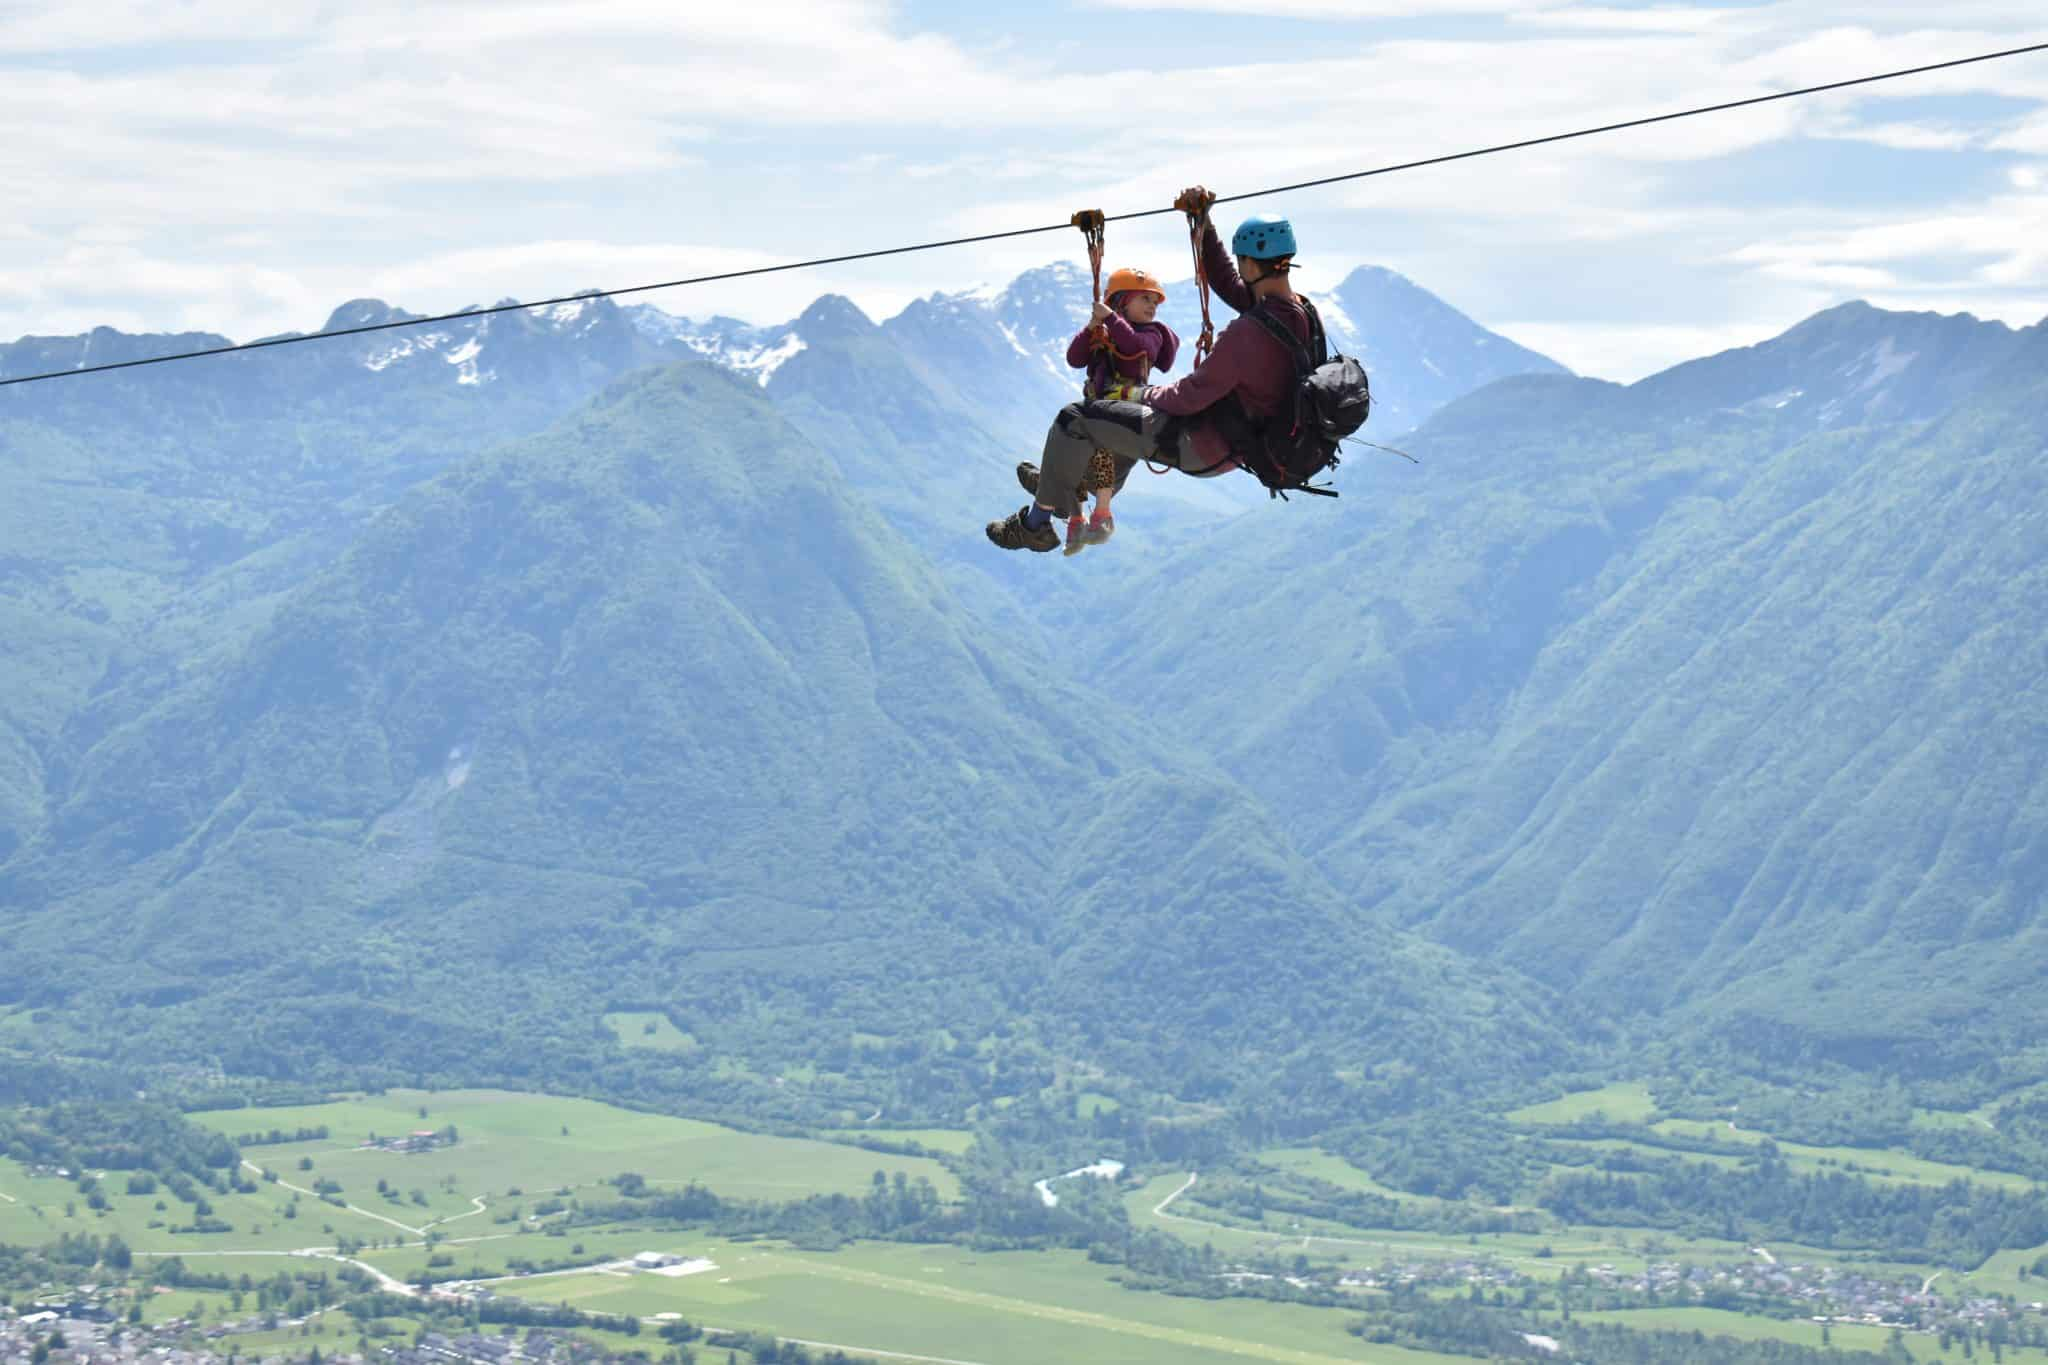 Zipline Bovec over Soča Valley is family-friendly